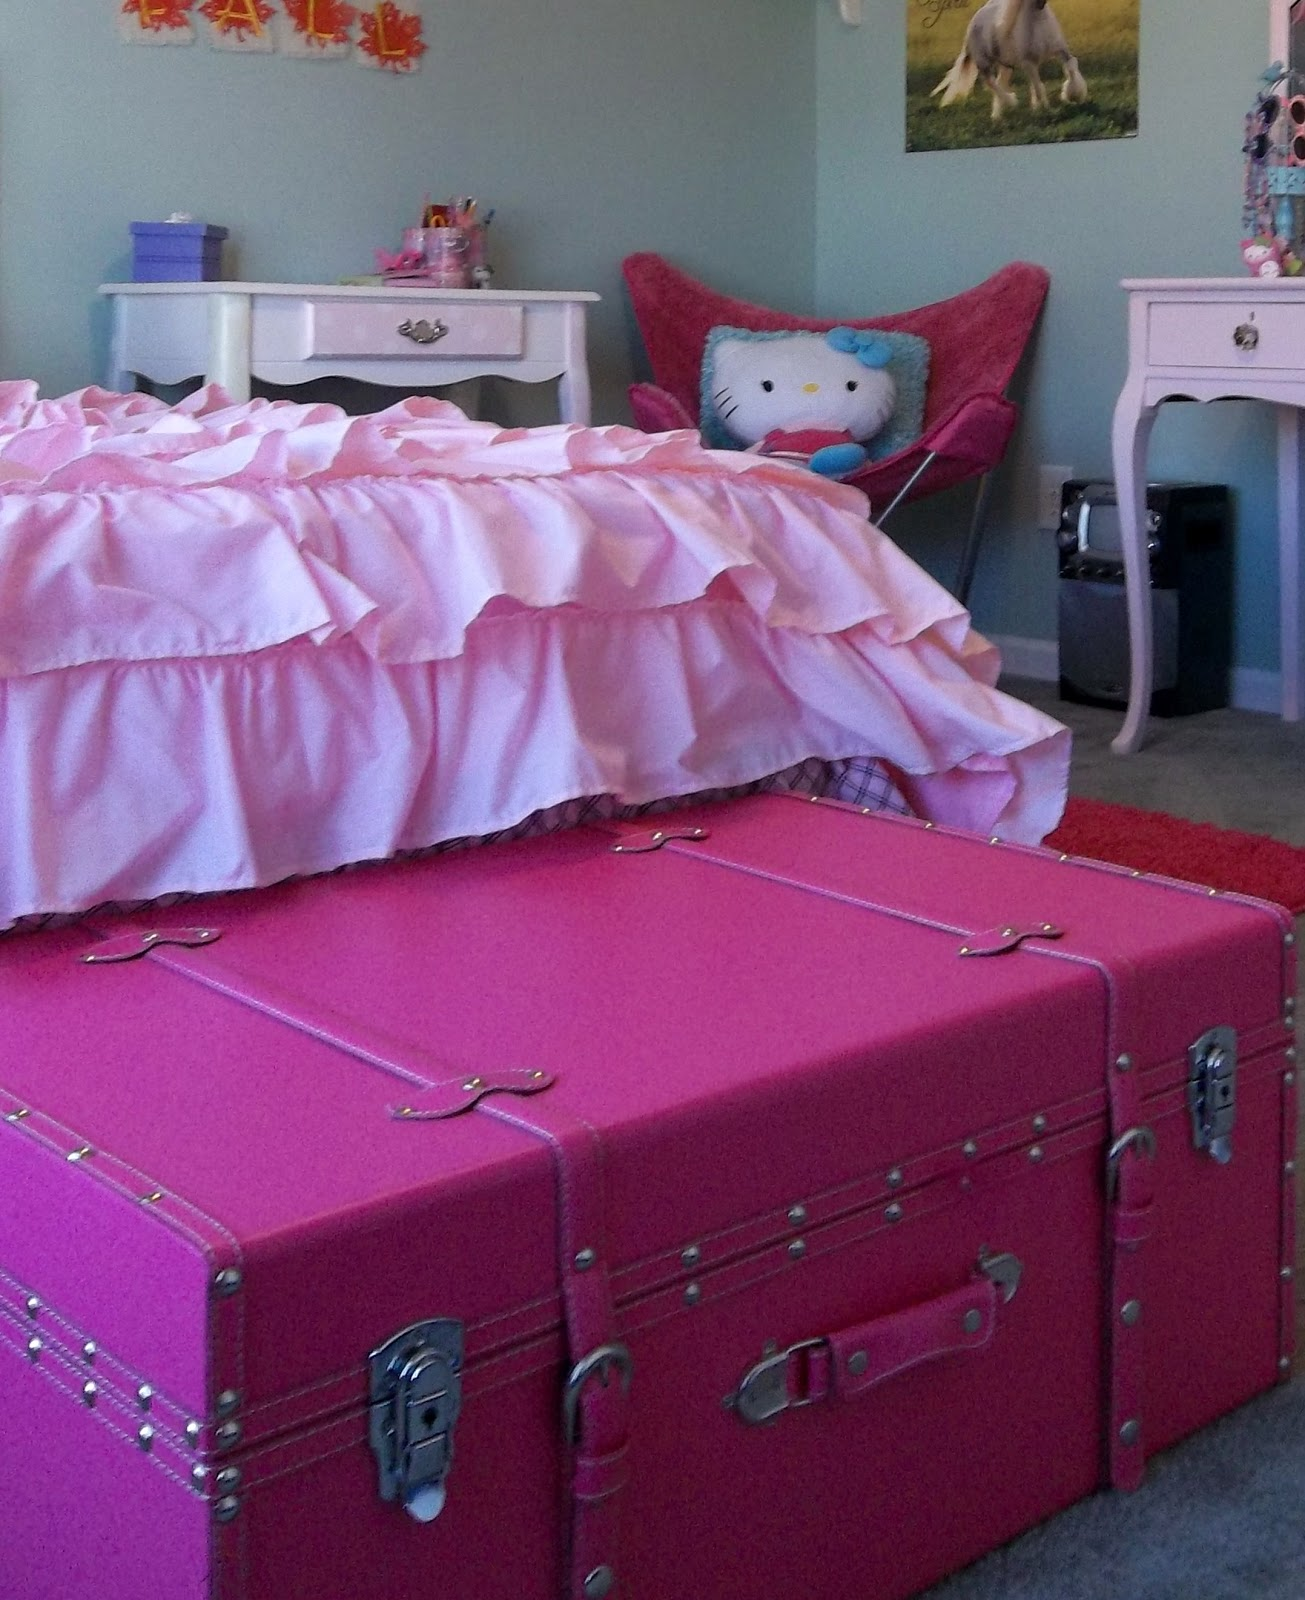 Vintage  Paint and more    pink trunk for girly girl room to store. Girly Girl Bedroom   Vintage  Paint and more